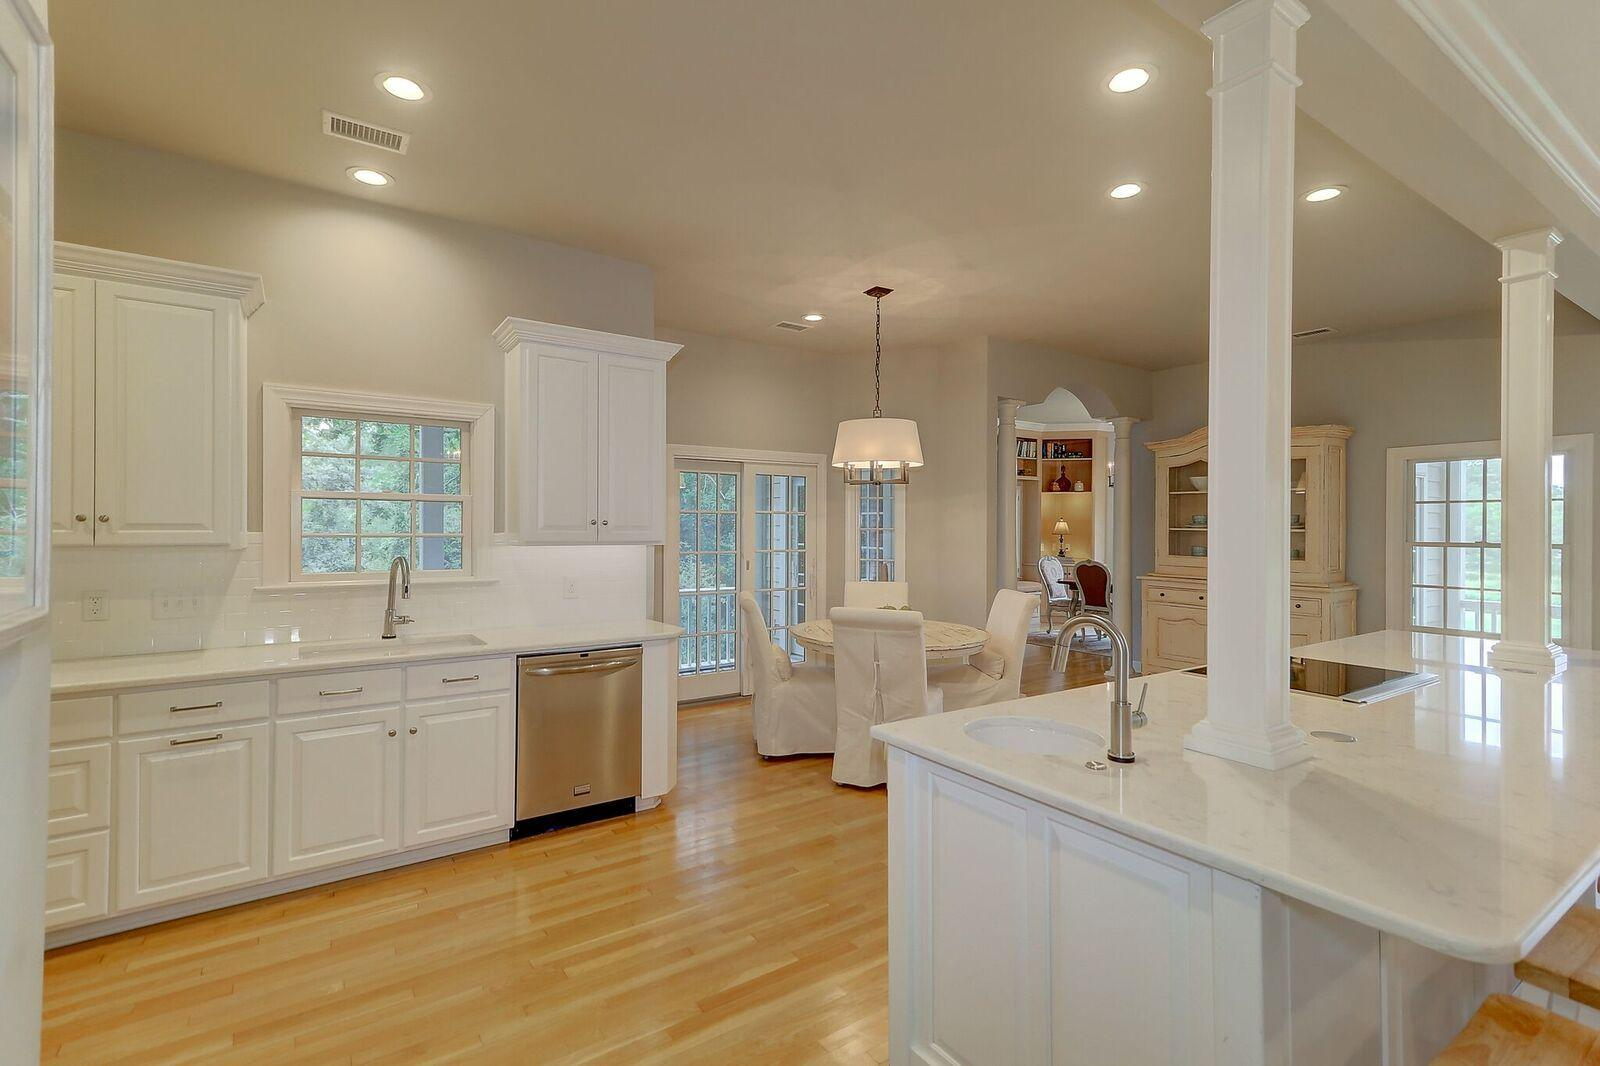 Wild Dunes Homes For Sale - 60 Seagrass, Isle of Palms, SC - 25